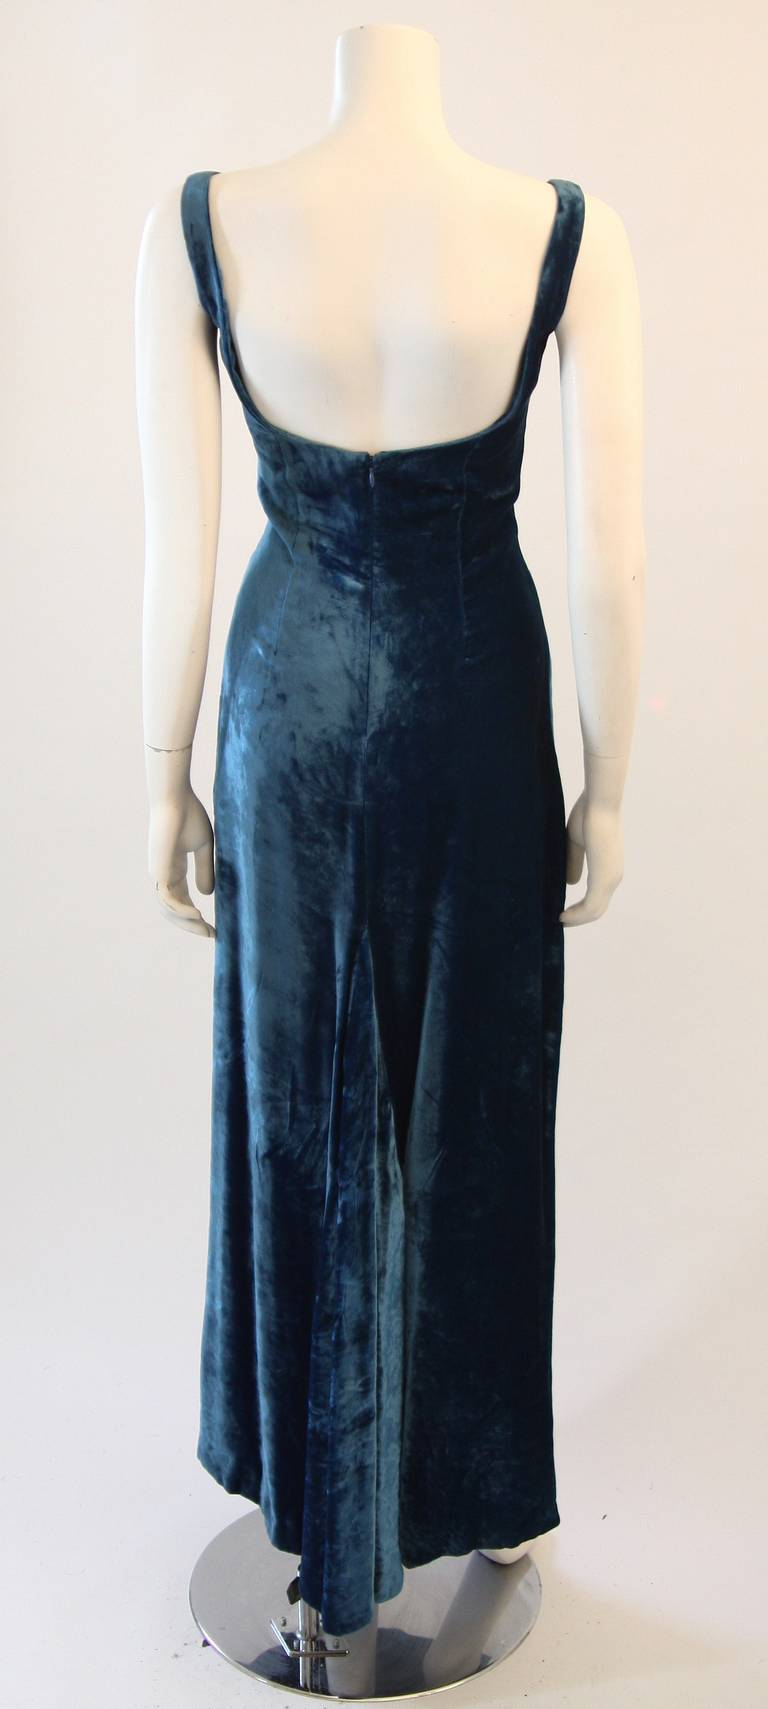 Dolce and Gabbana Jewel Blue Crushed Velvet Gown Circa 2000 Size 42 6